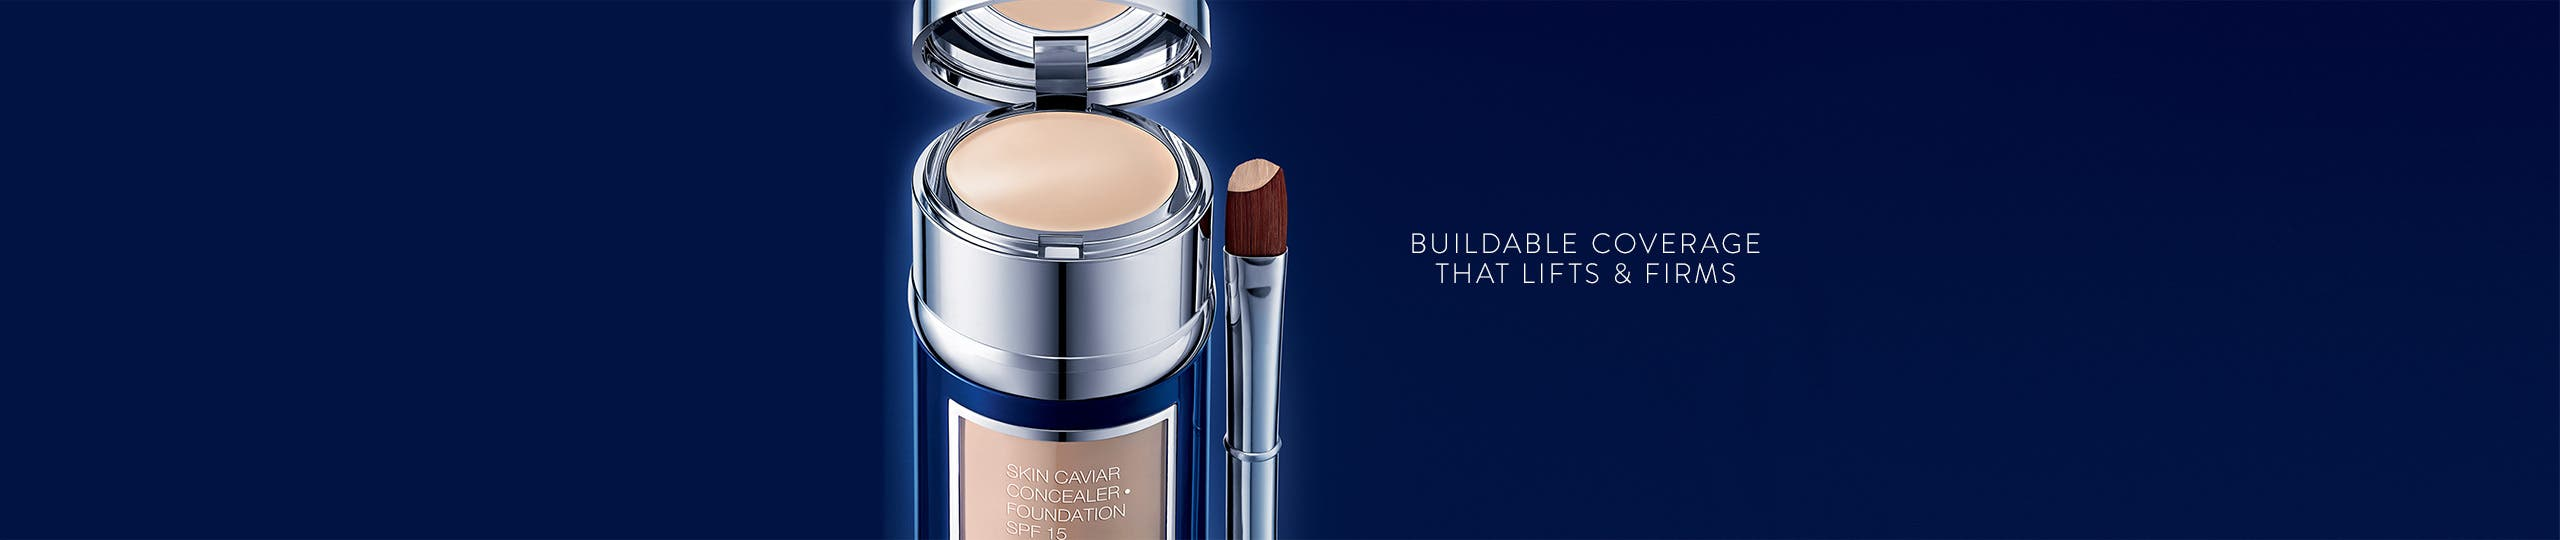 Buildable coverage that lifts and firms.